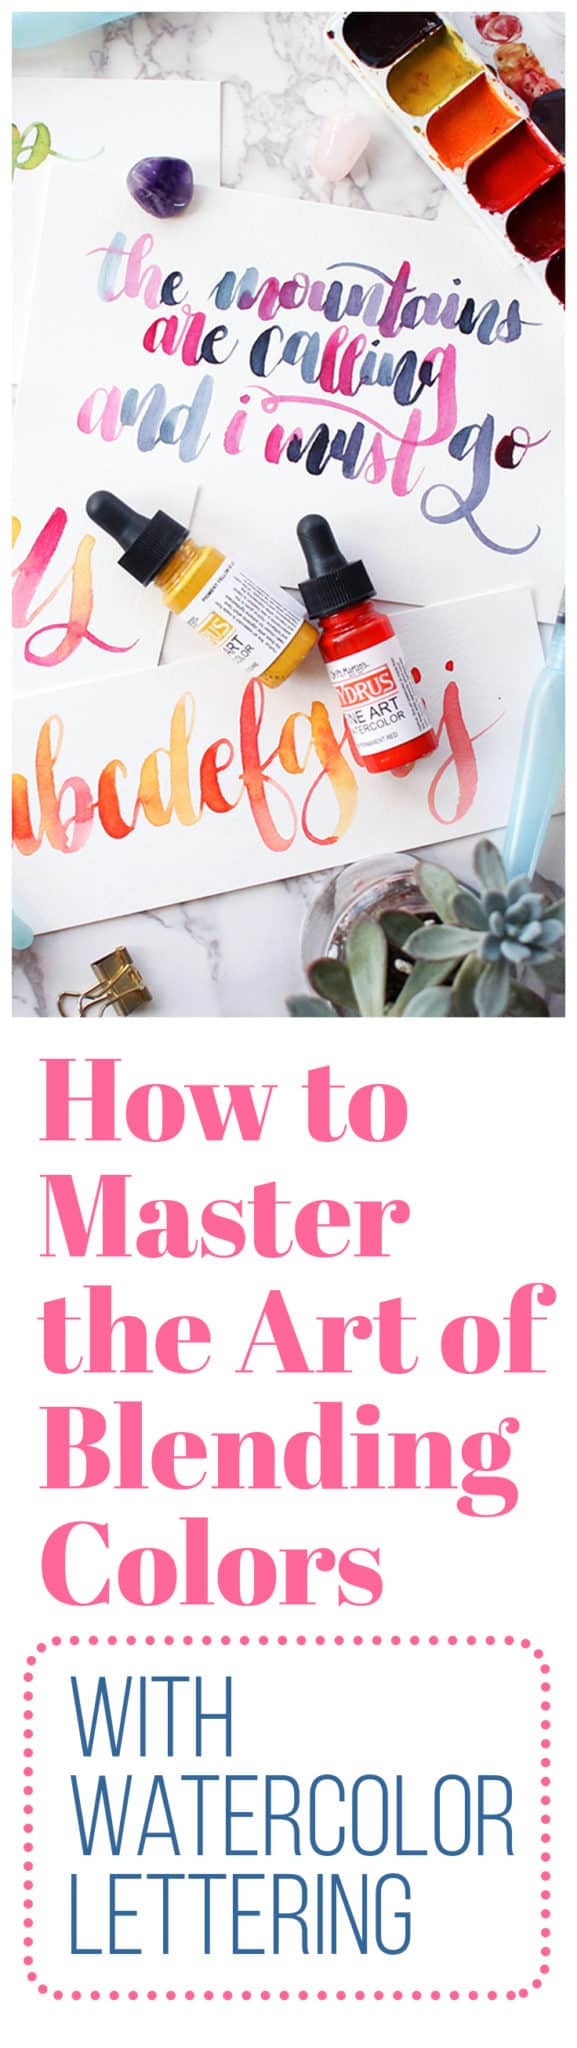 If you've tried watercolor lettering, you may have discovered that using multiple colors in the same piece is tougher than it looks. But there's a trick for how to blend colors well, and it's super easy! Once you learn this simple technique, you'll be mixing colors on the page like a pro and creating gorgeous pieces of lettering art!